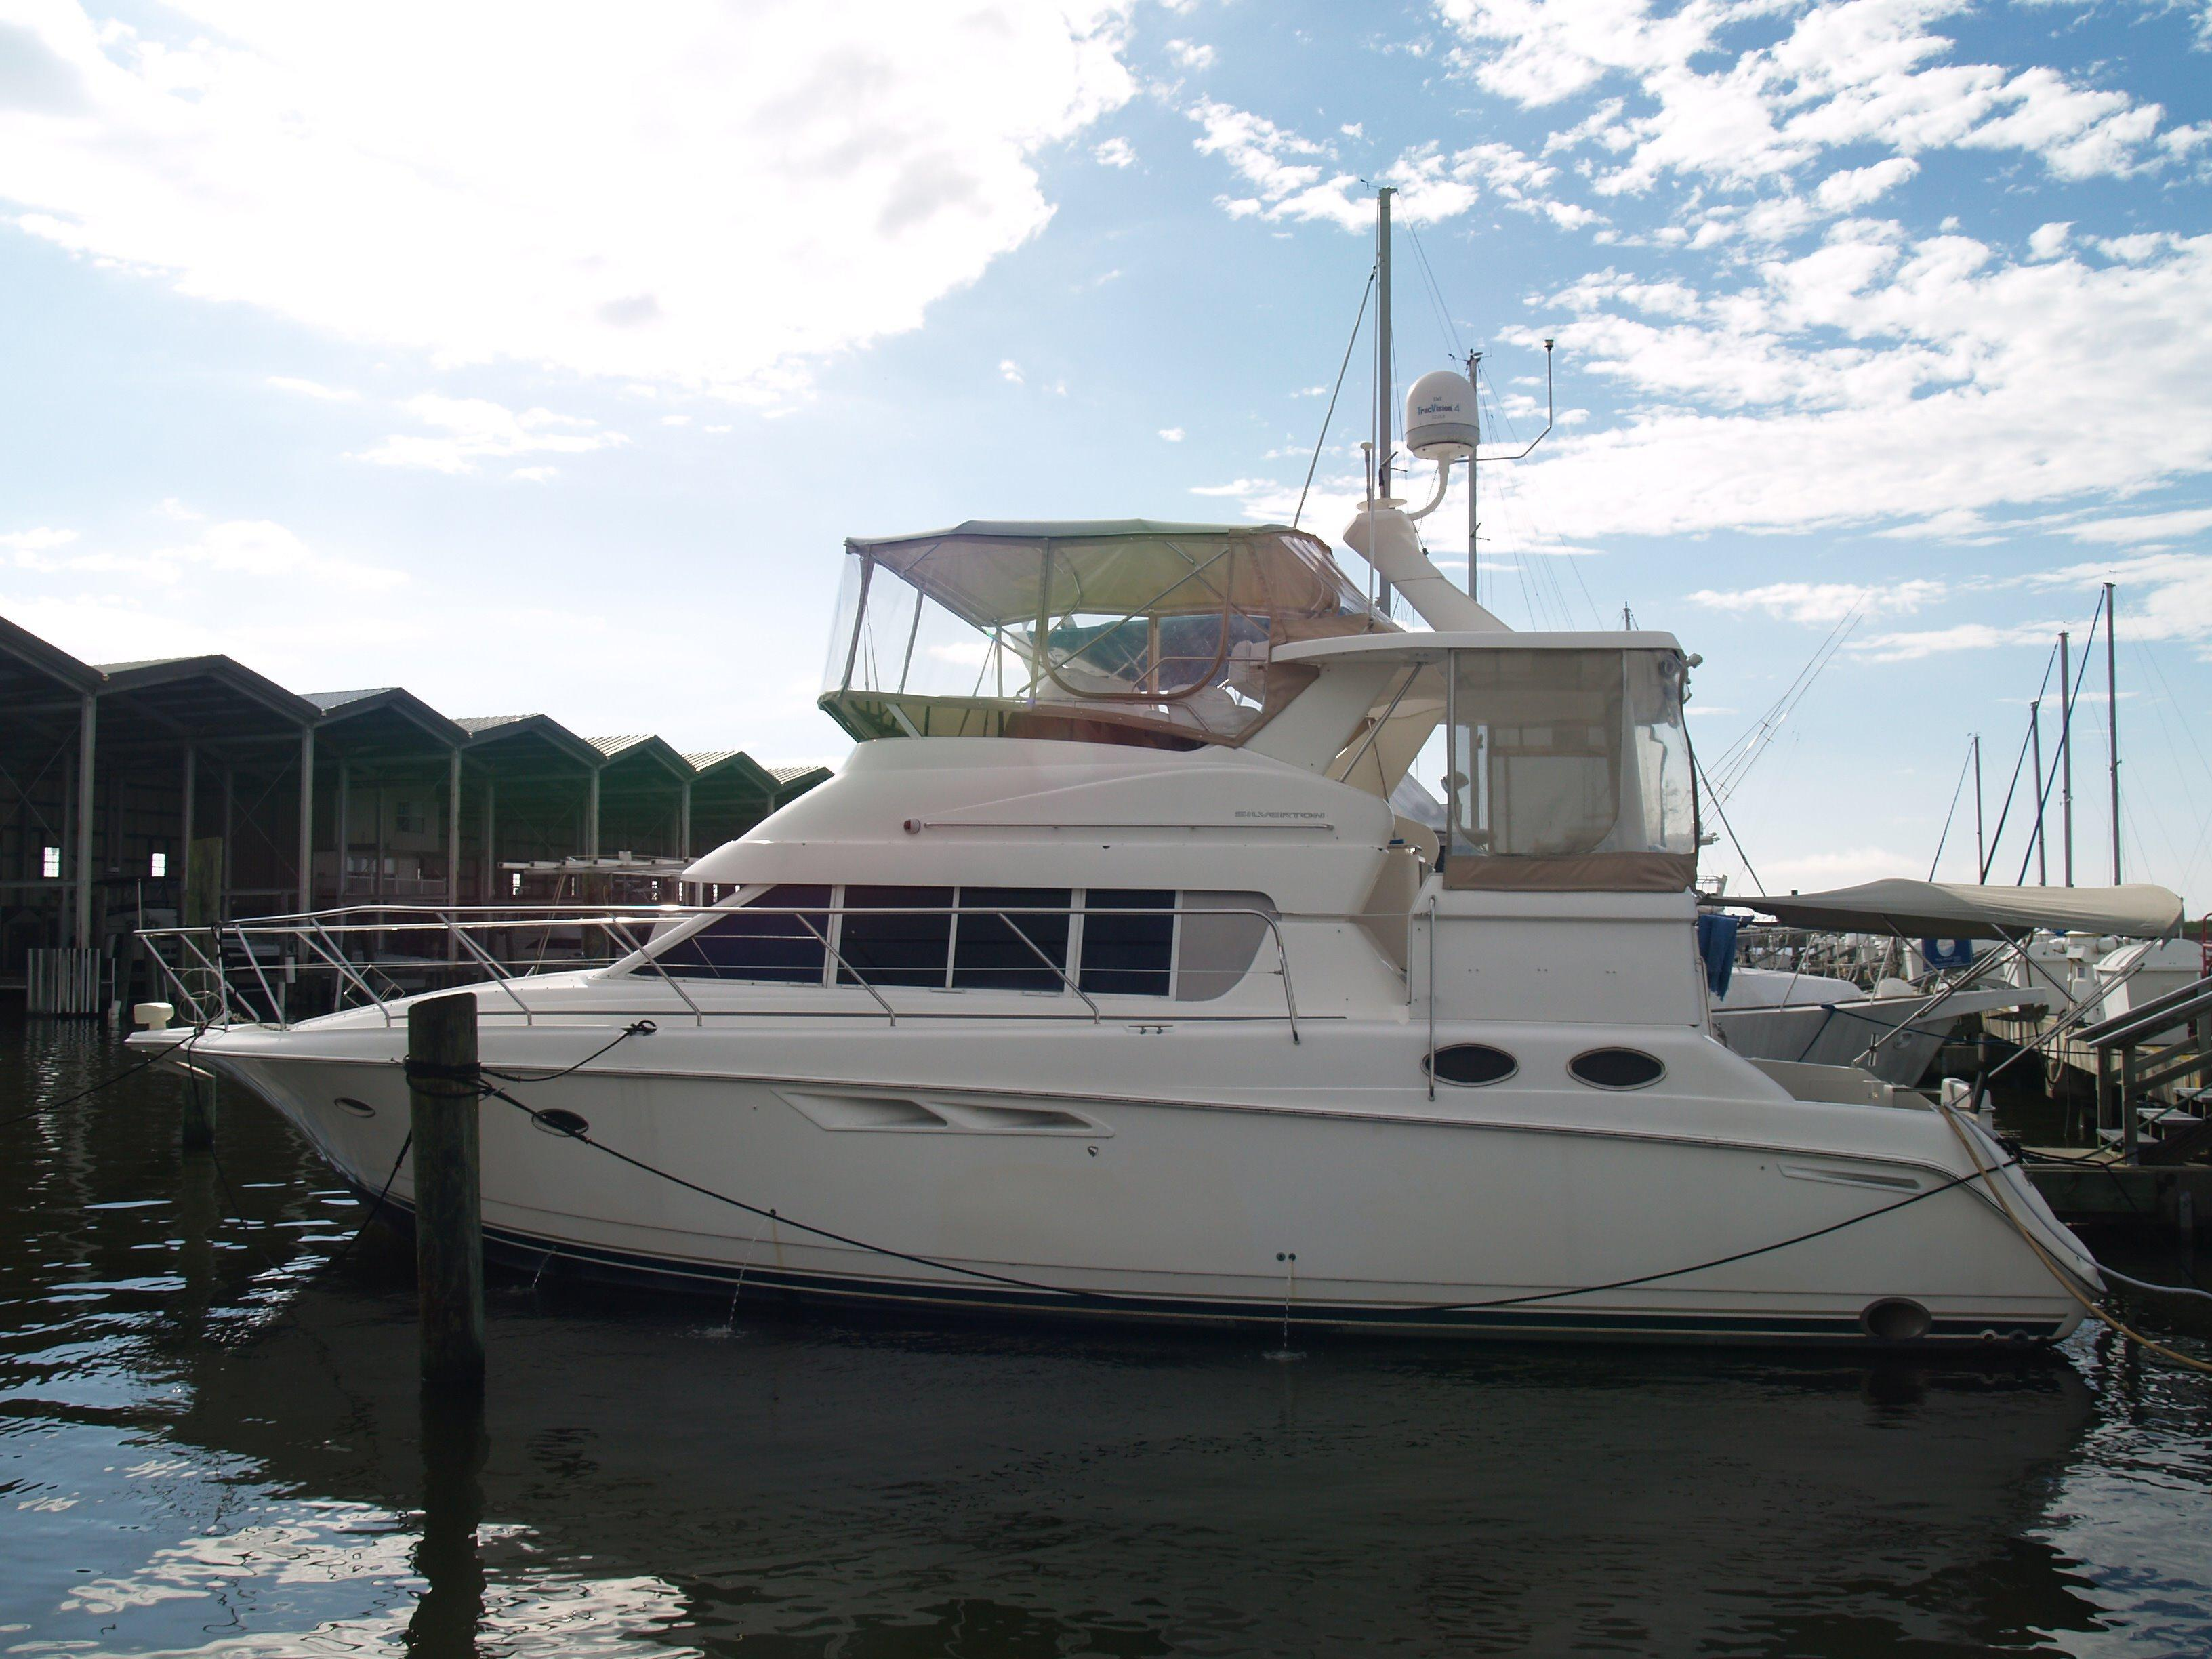 Used 1999 silverton 442 cockpit motor yacht for sale in for Silverton motor yachts for sale